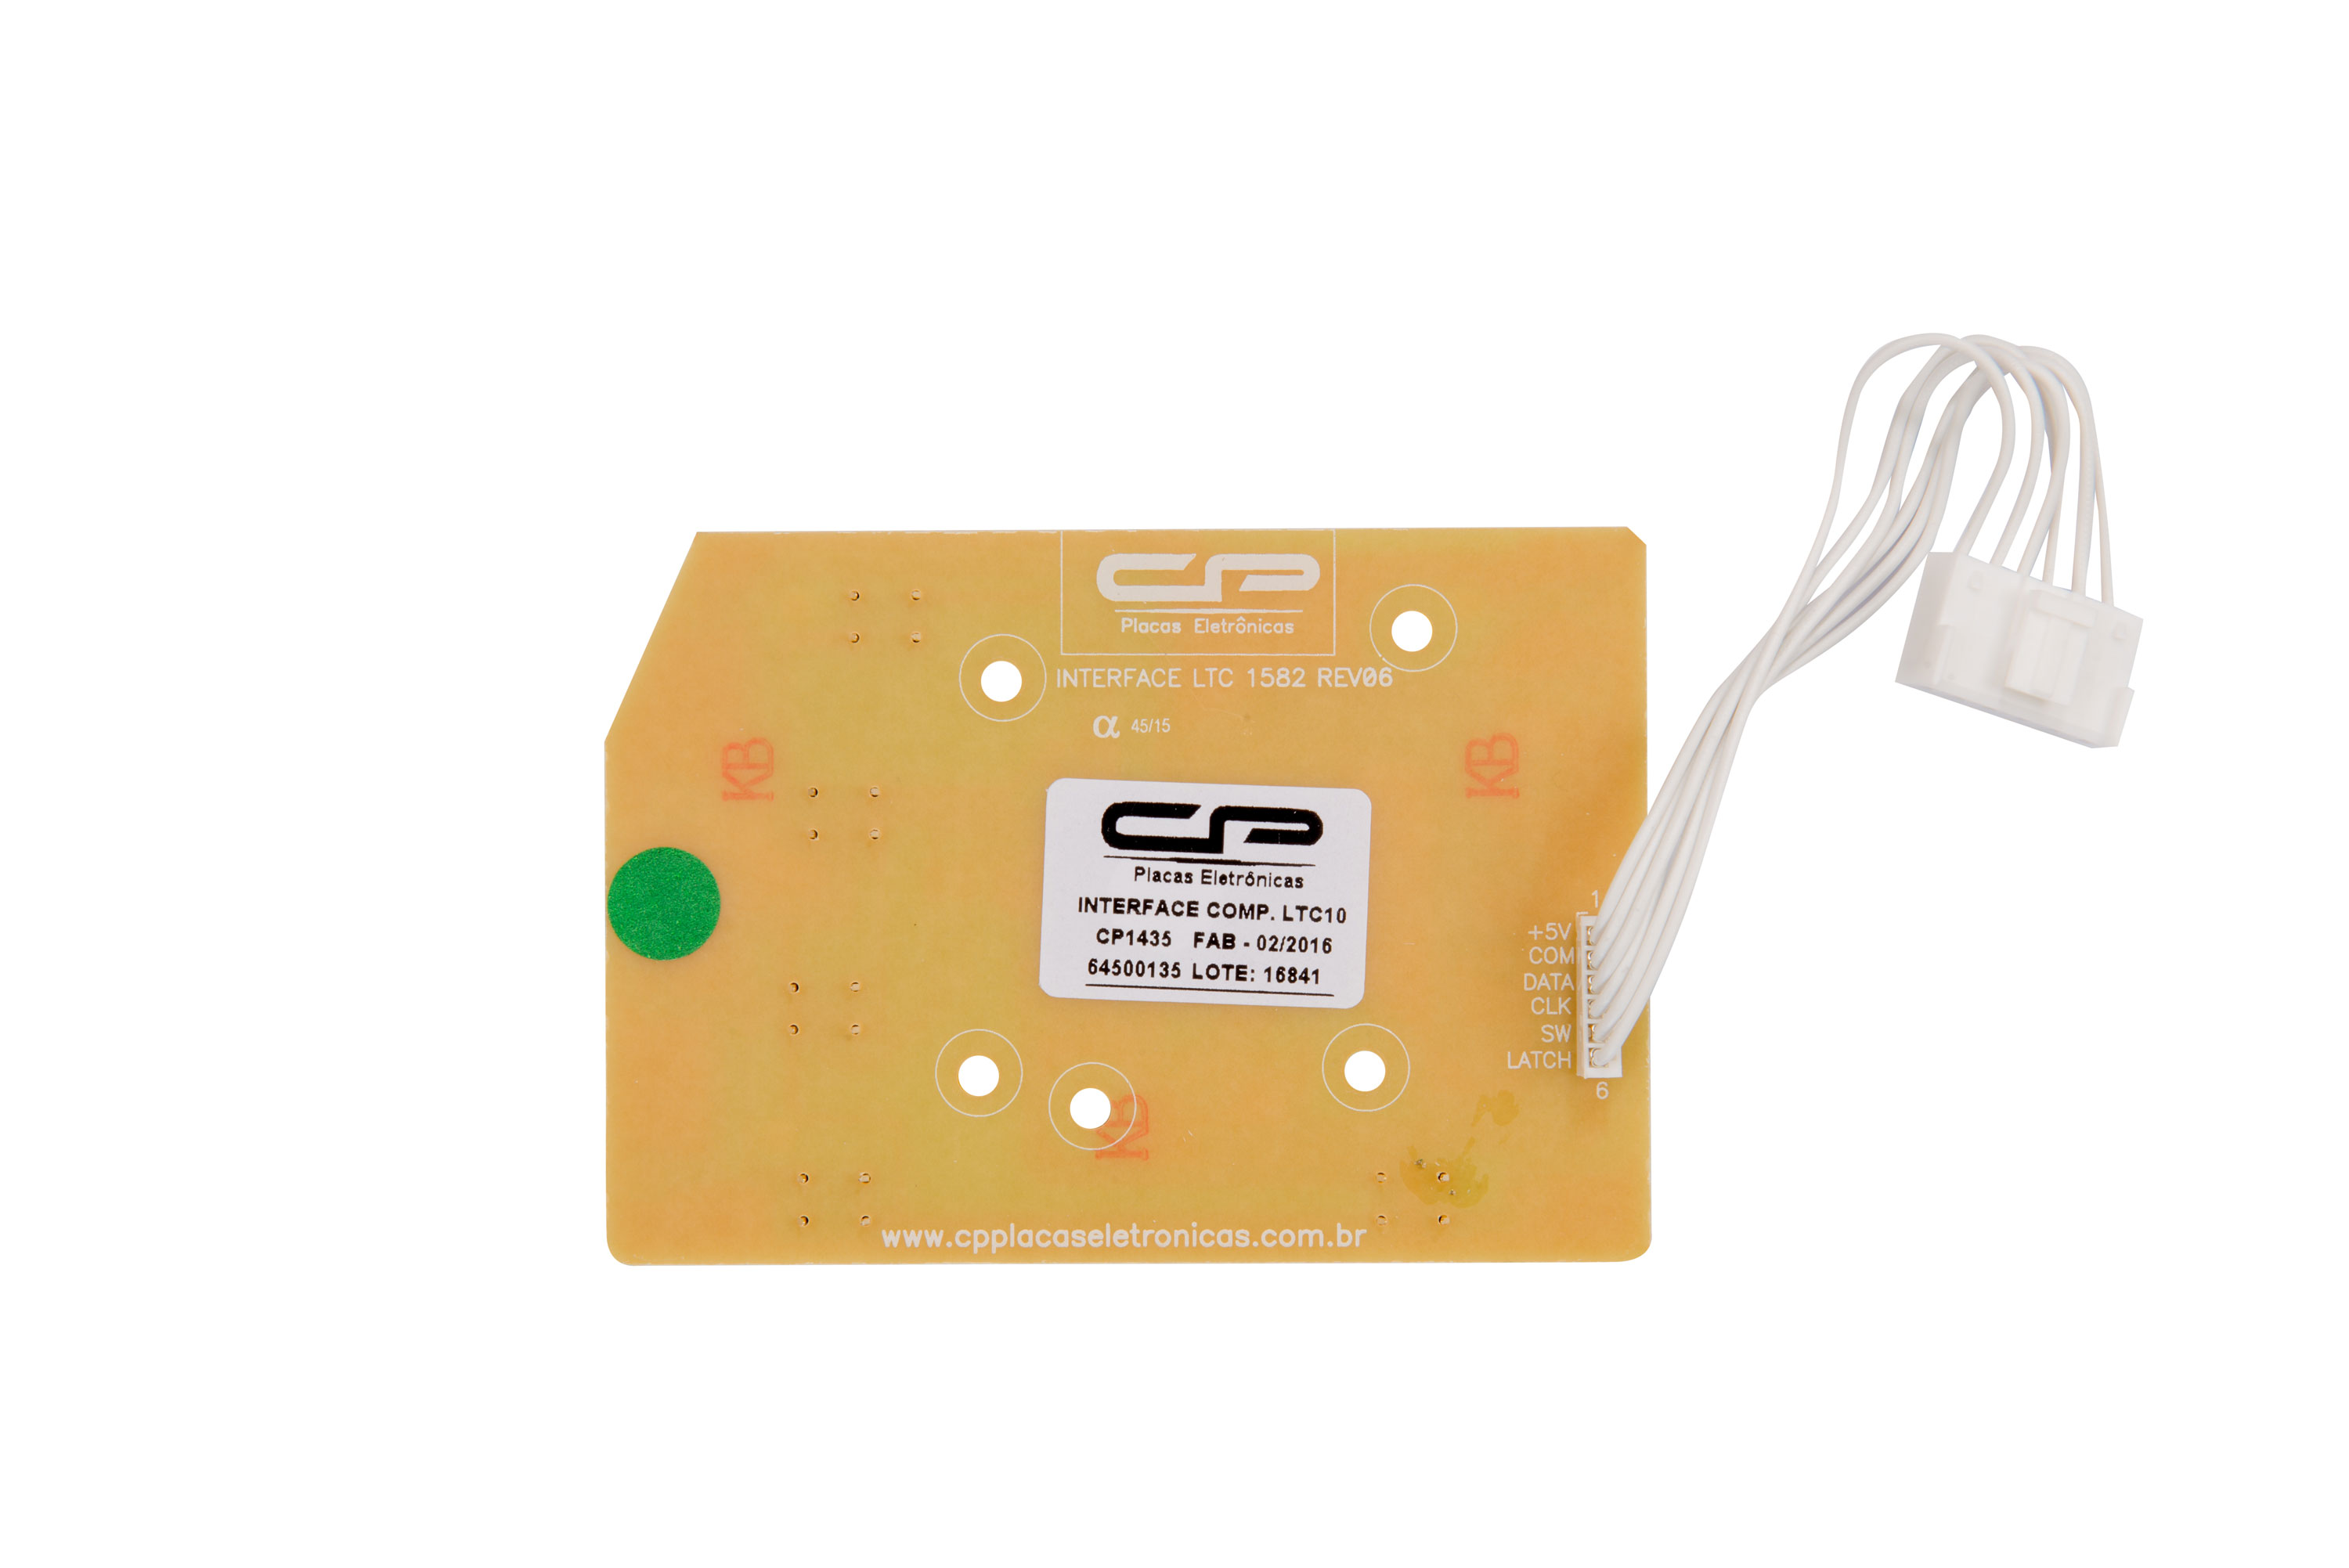 CP 1435 - Interface compatível LTC10, LTC12, LTC15, LT11F, LT12F, LT15F, LTD09, LTD11.